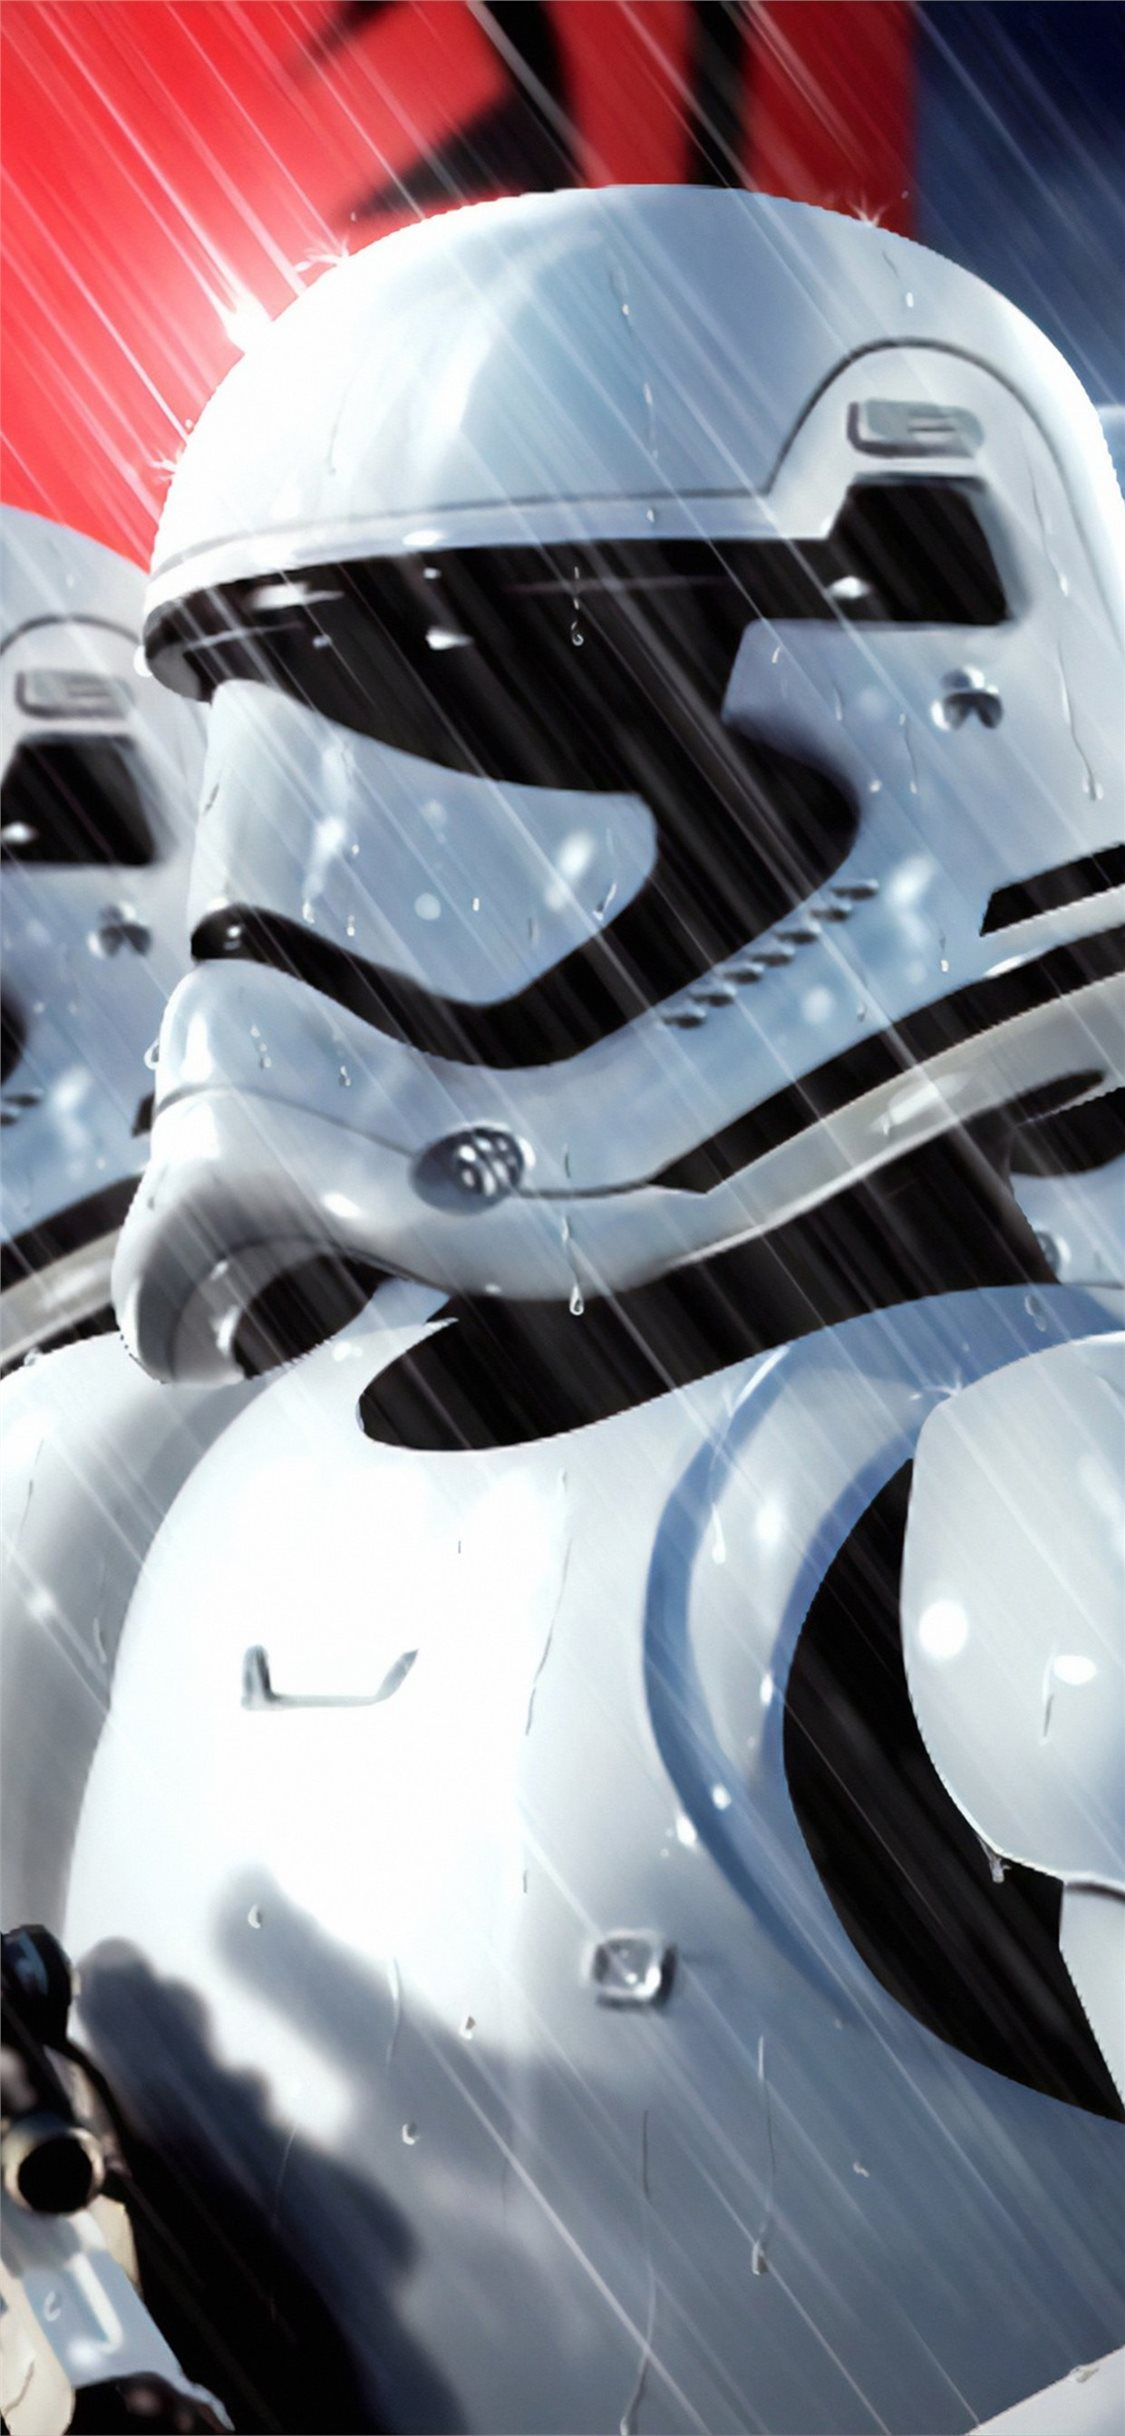 stormtroopers 4k art iPhone X